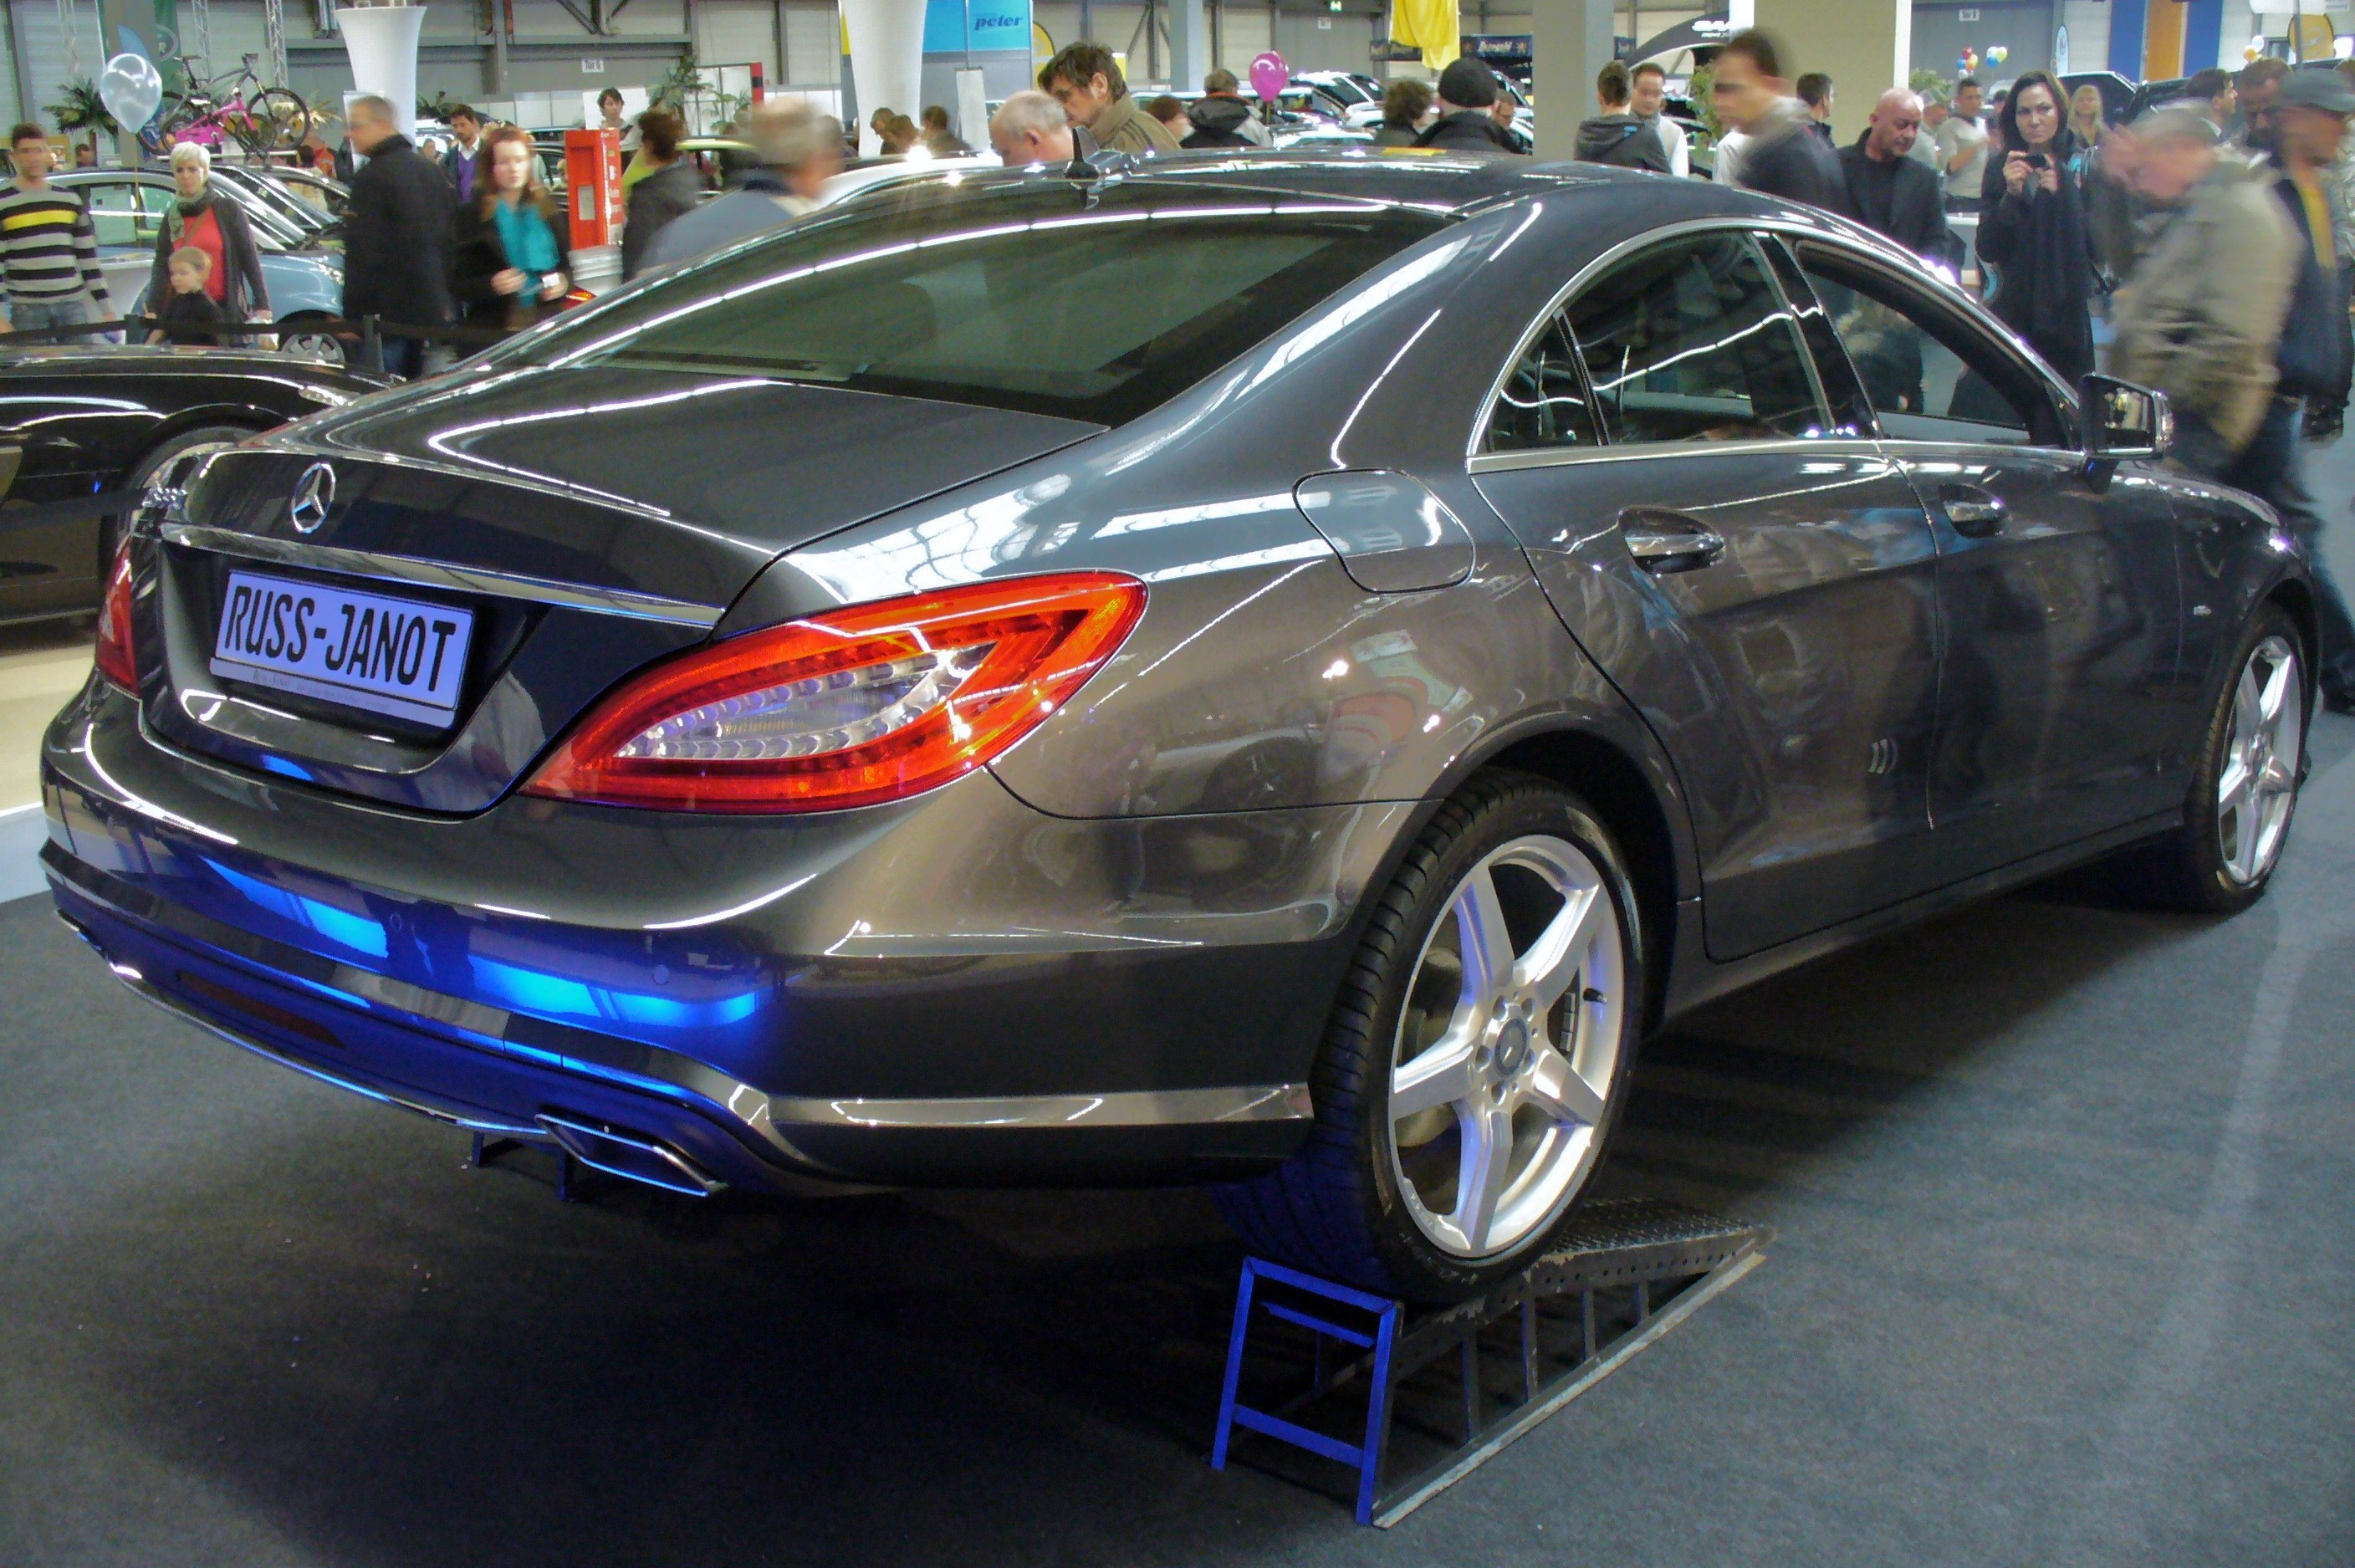 2005 Mercedes Benz CL Class Information and photos ZombieDrive